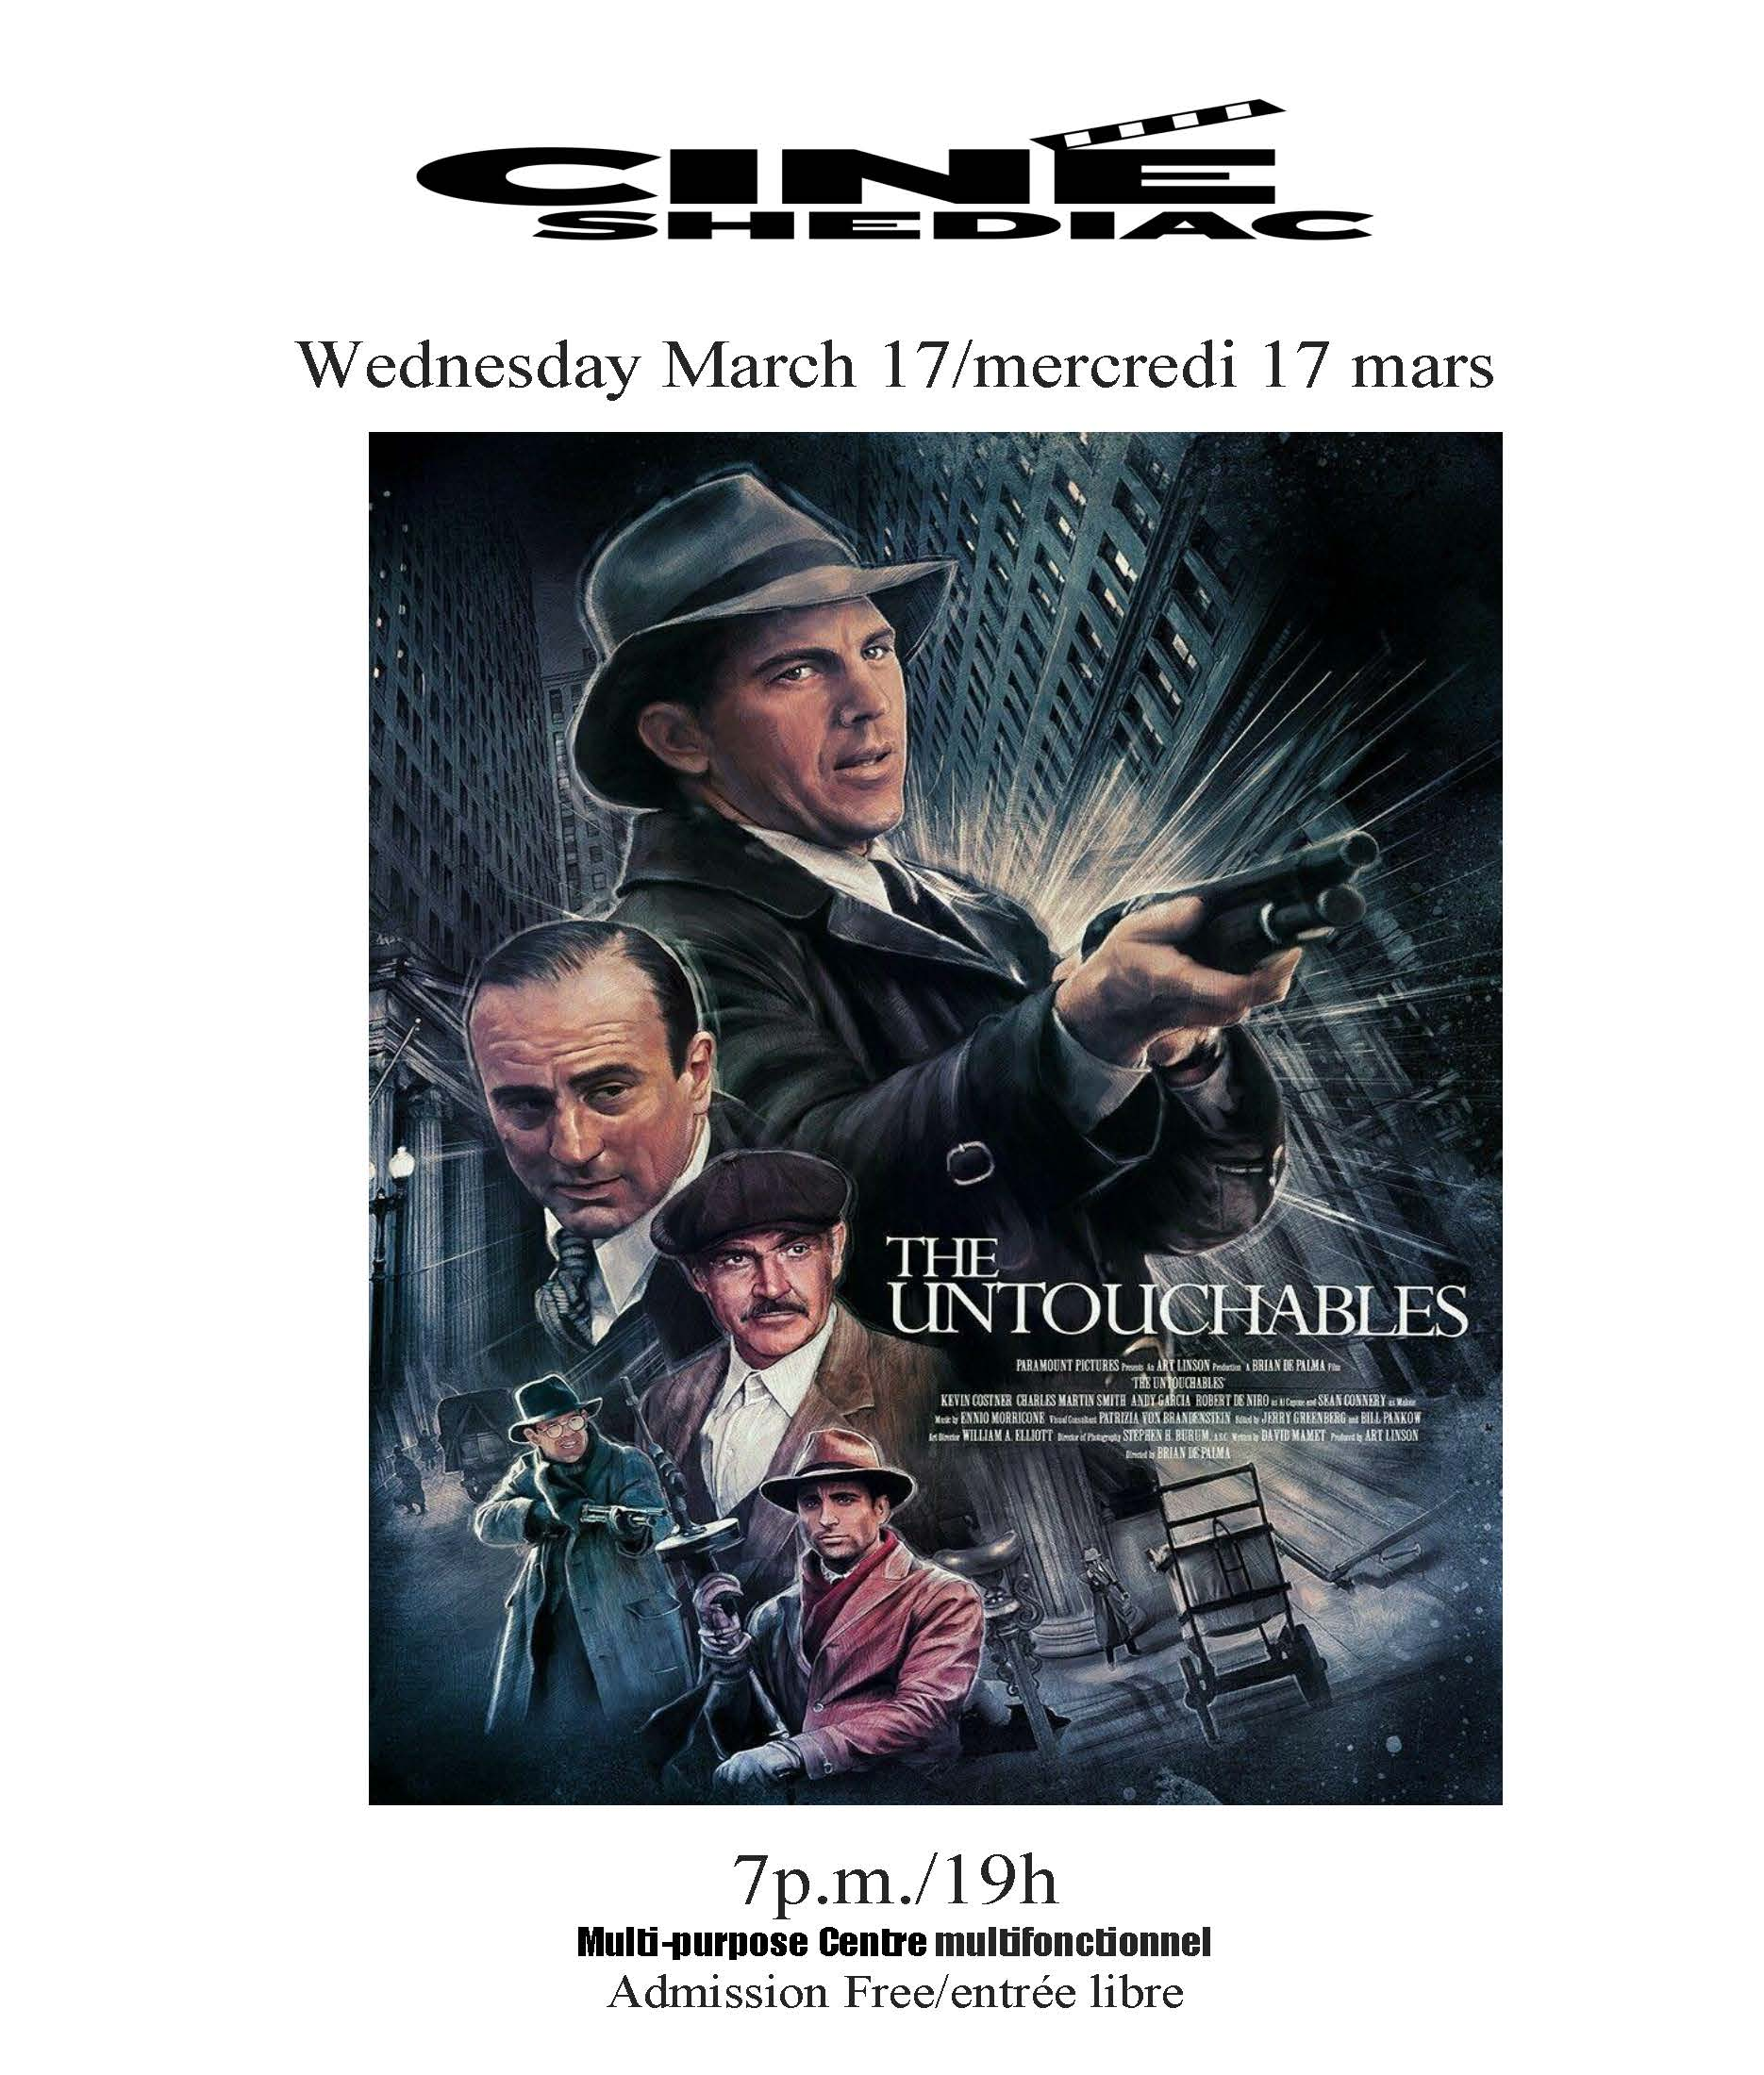 The Untouchables 17 mars